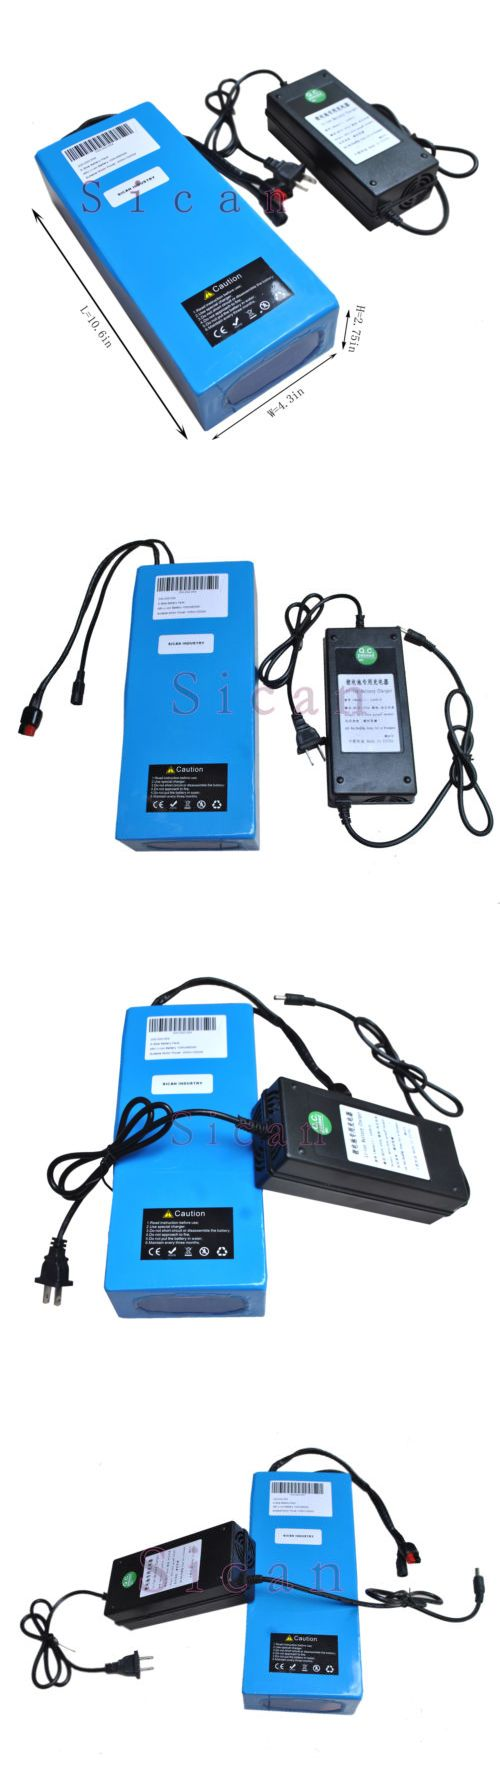 Other Multipurpose Batteries: 48V 10Ah E-Bike Li-Ion Li-Battery Rechargeable Battery Pack Bicycle /W Charge BUY IT NOW ONLY: $229.0